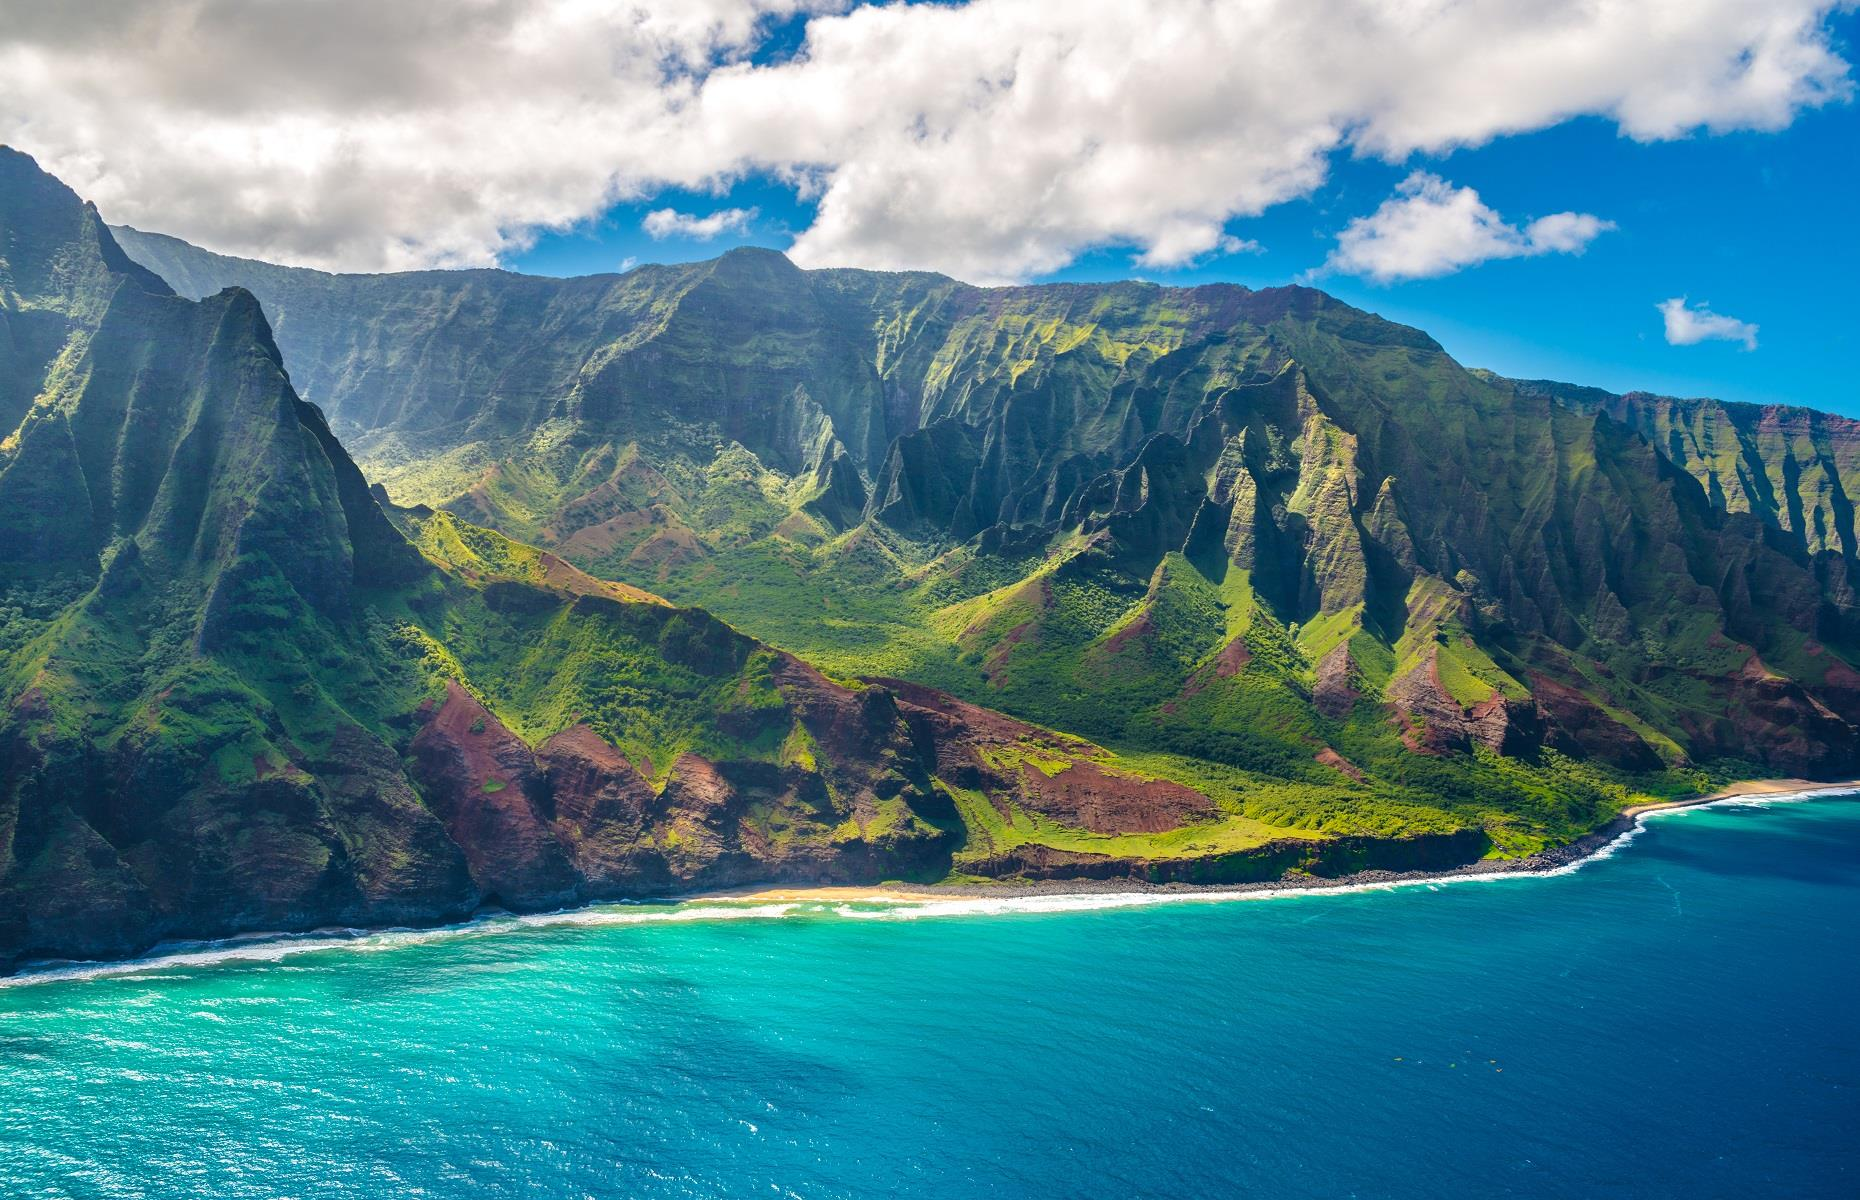 Slide 37 of 59: We're not sure about you but we've never seen anything more incredible than the Nā Pali Coast in Hawaii. This dazzling shoreline is punctuated by razor-sharp sea cliffs, delicate winding valleys and cascading waterfalls. The eye-catching area has had a silver screen moment too – it was the backdrop for 1997's The Lost World: Jurassic Park.